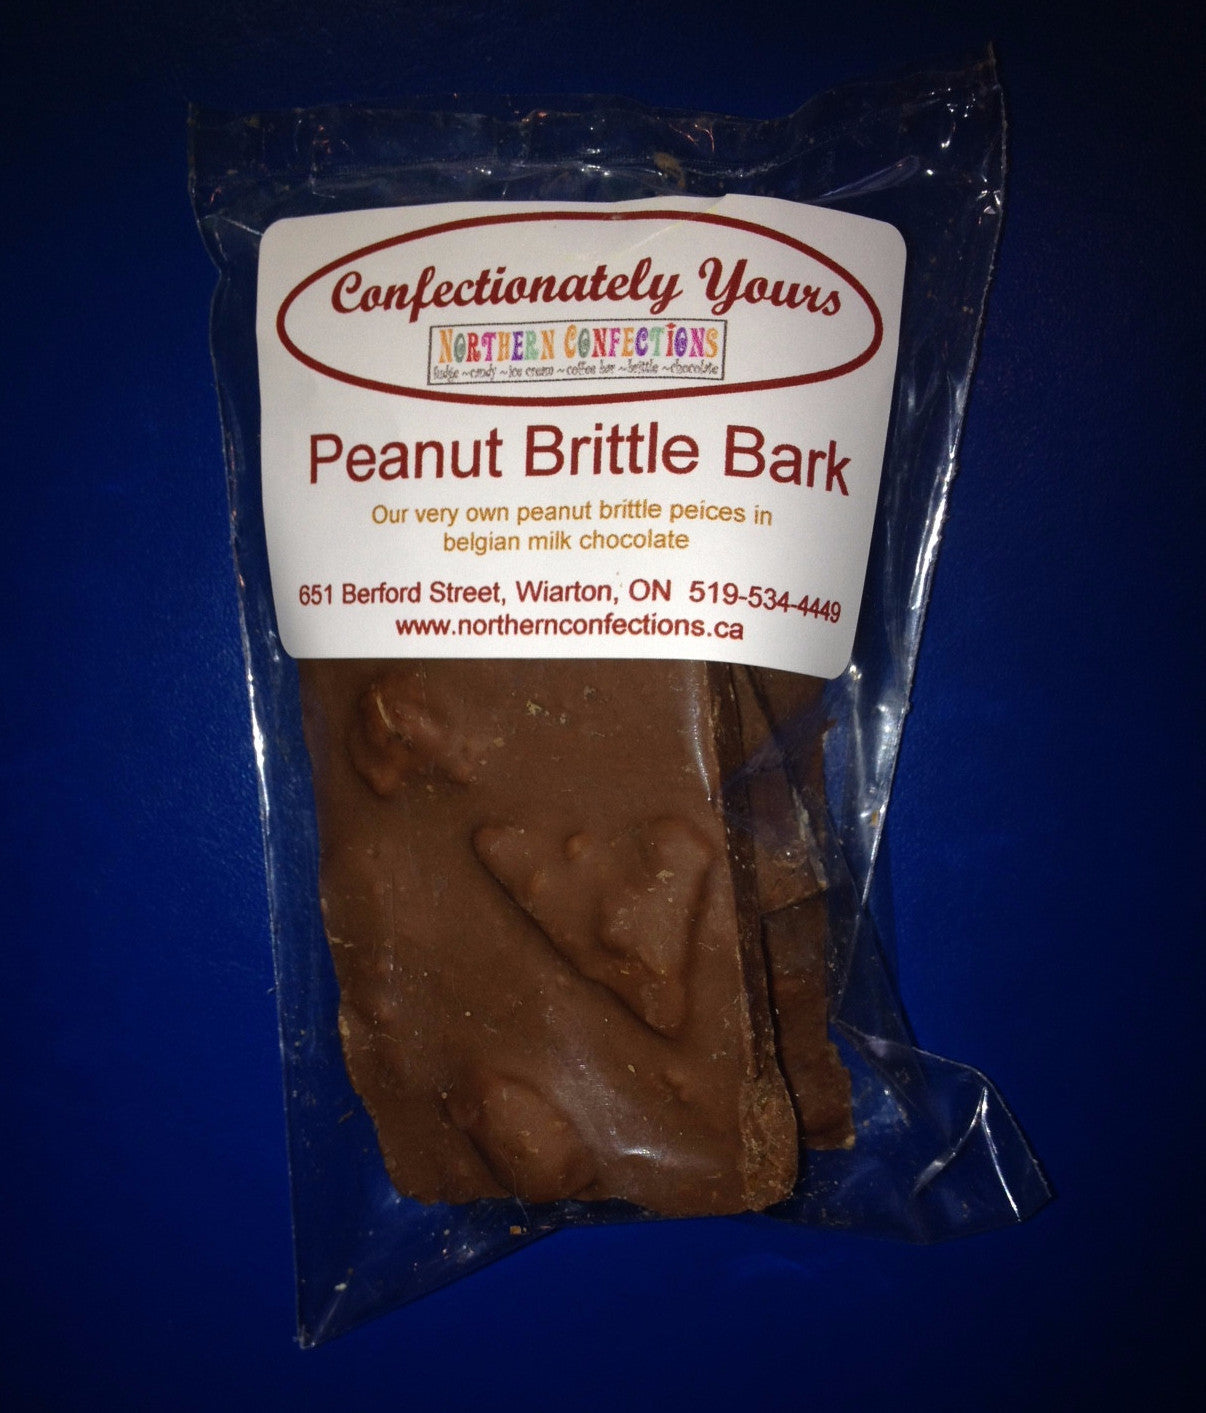 Peanut Brittle Bark